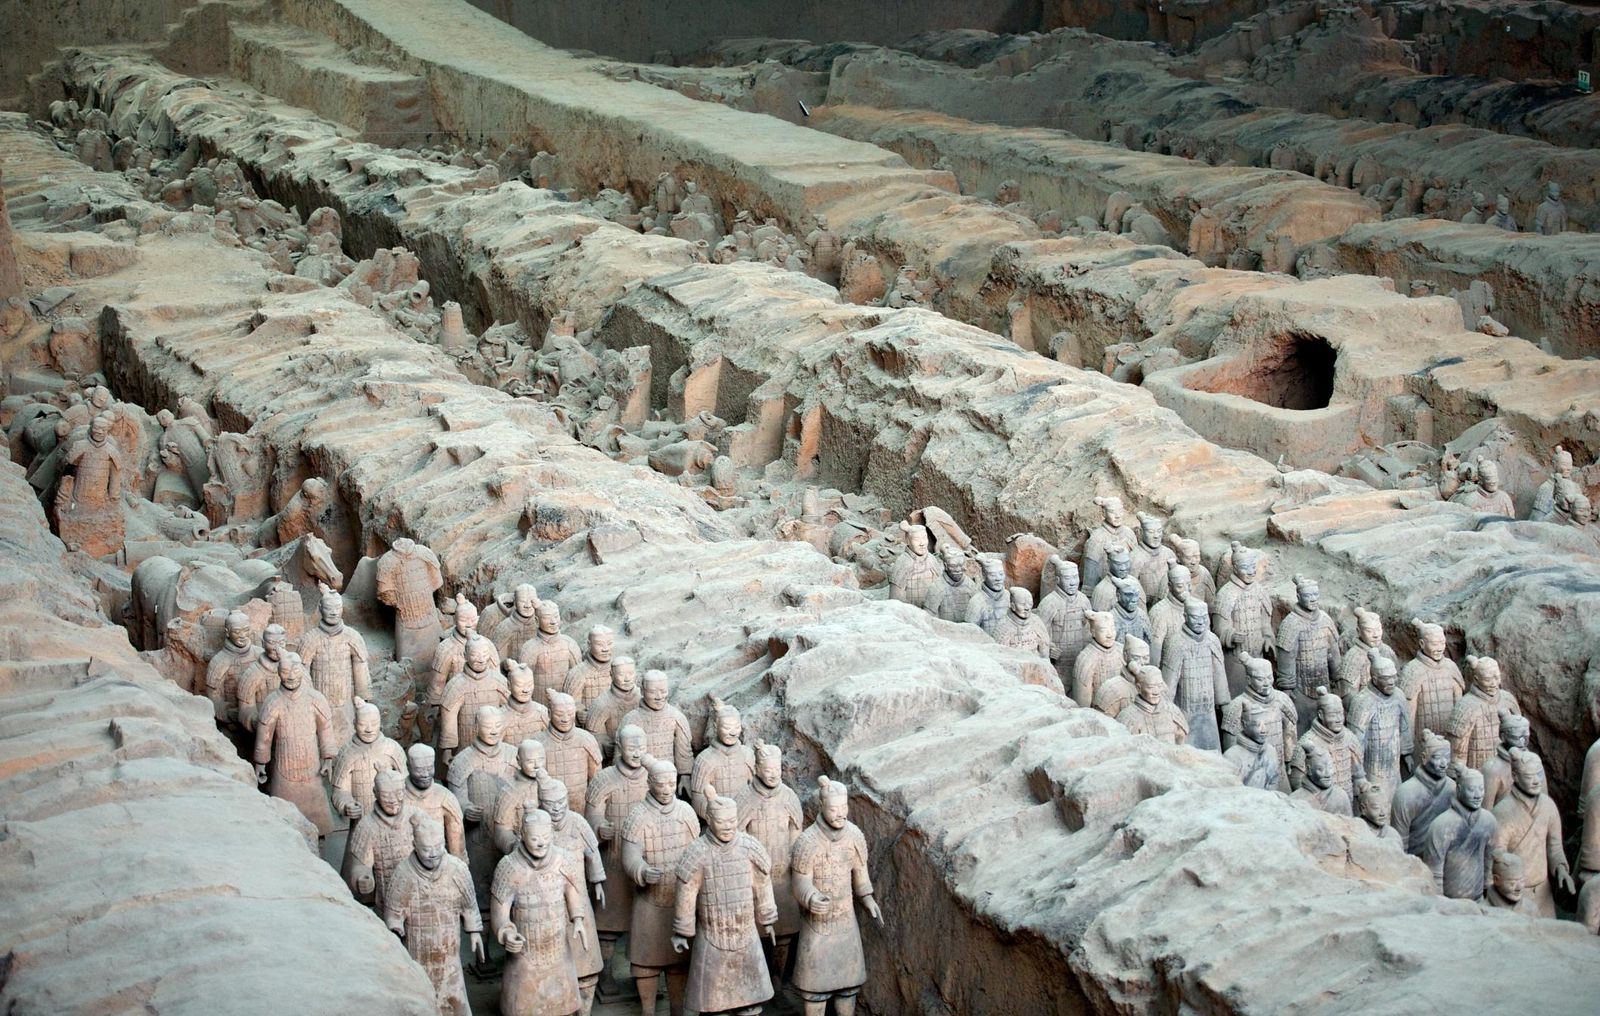 Archaeologists Excavate 200 More Chinese Terracotta Warriors